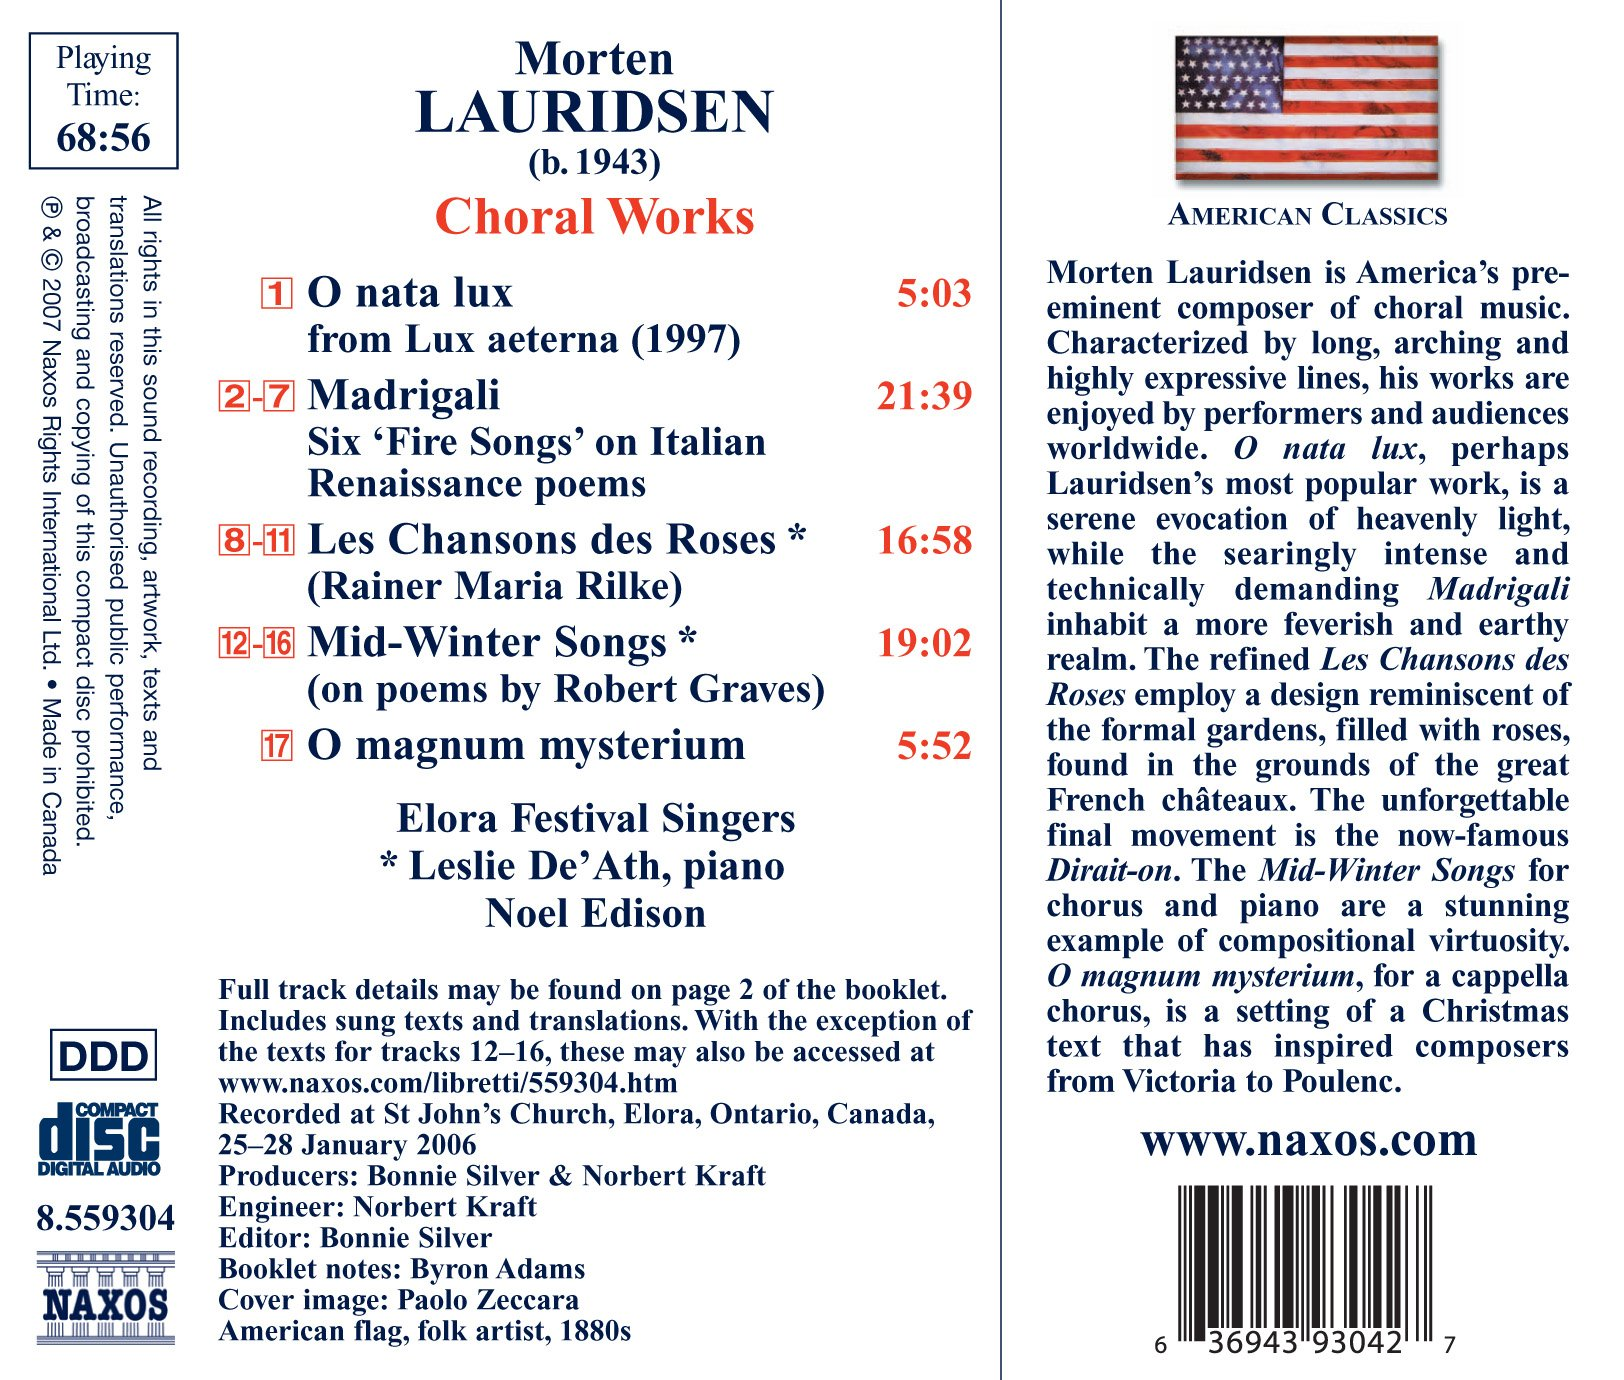 Lauridsen: O magnum mysterium; O nata lux; Madrigali; Mid-Winter Songs